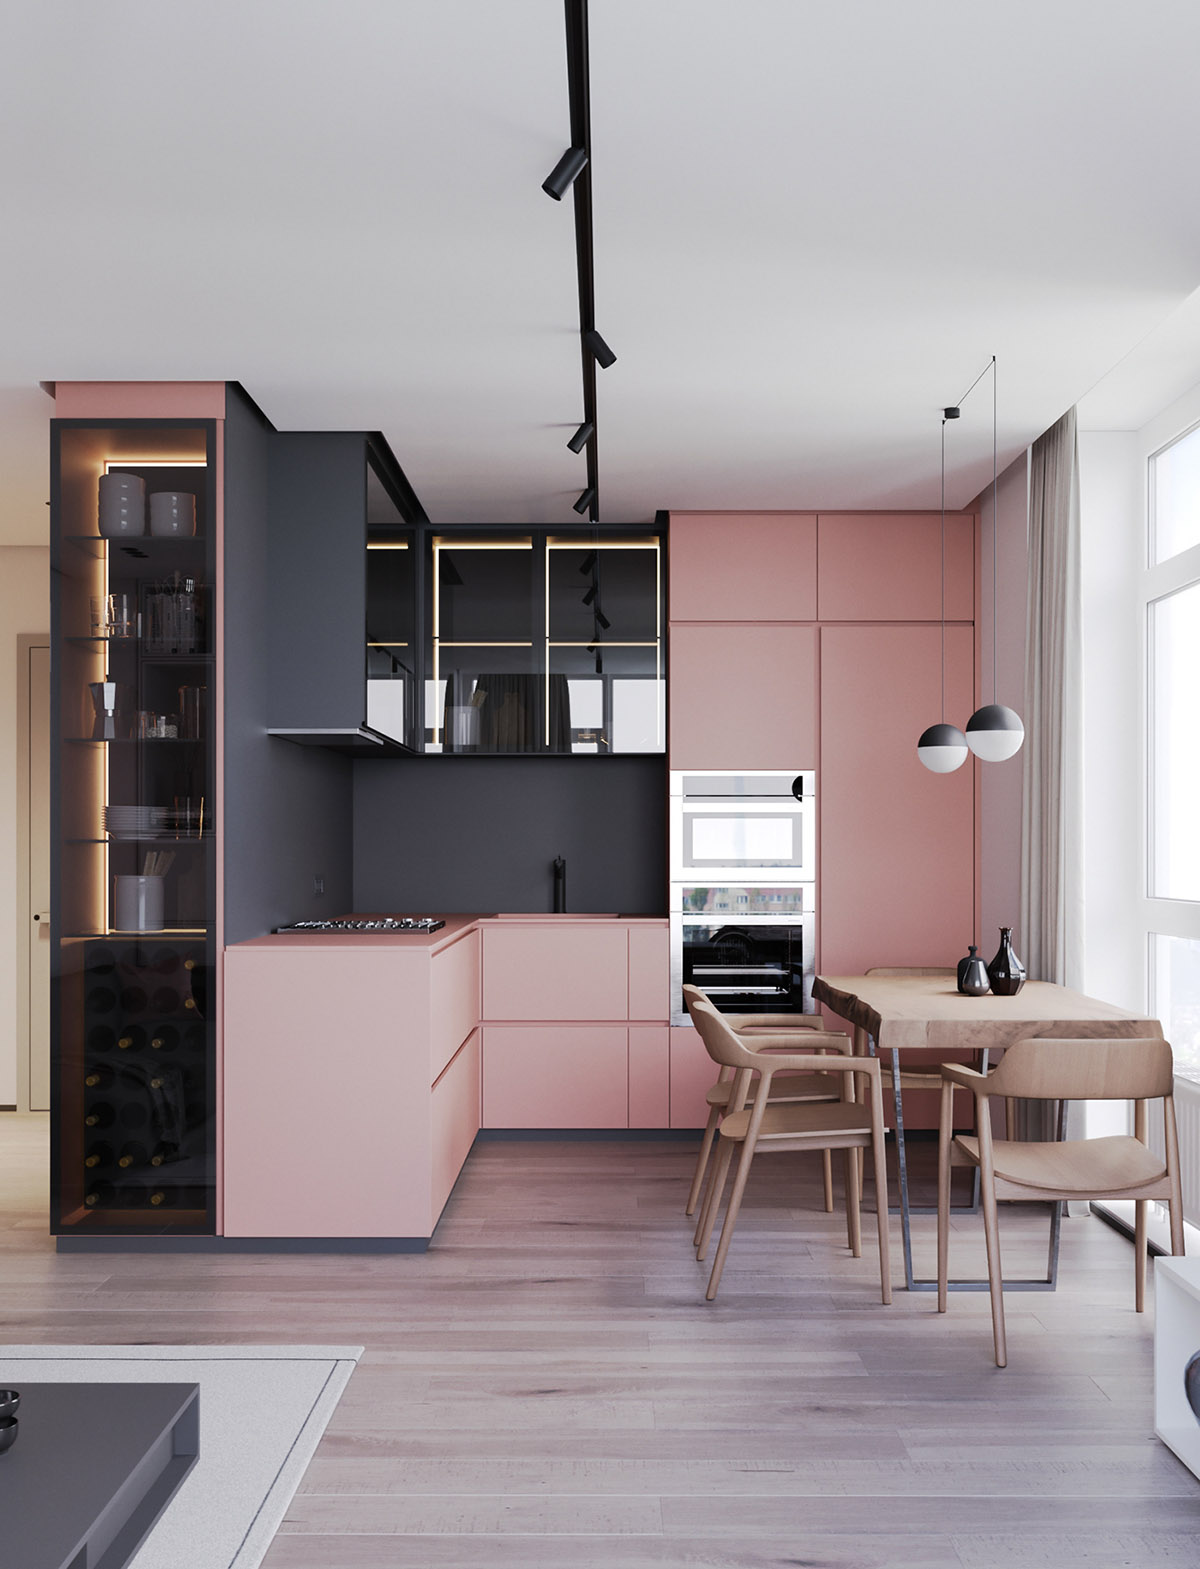 4 Inspirational Pink Kitchens With Tips & Accessories To Help You